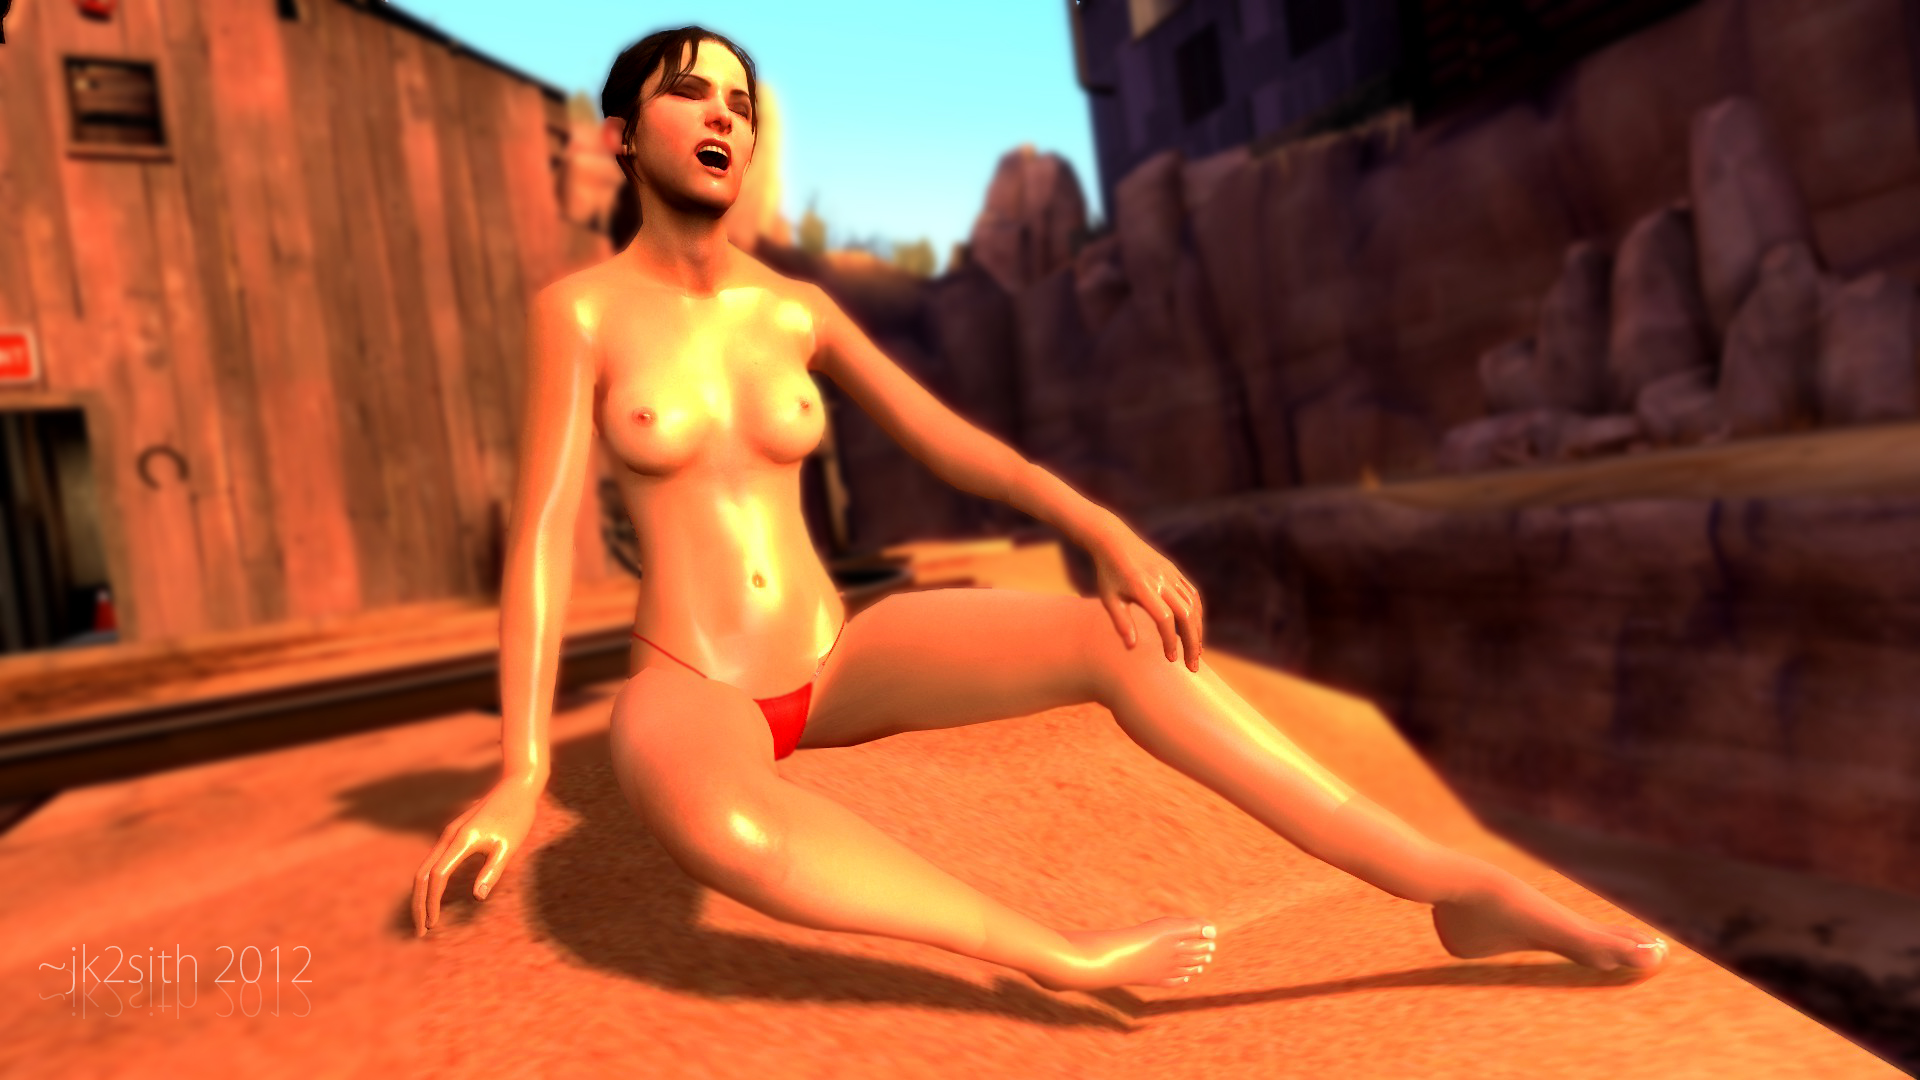 Gmod zoey hentai erotica download